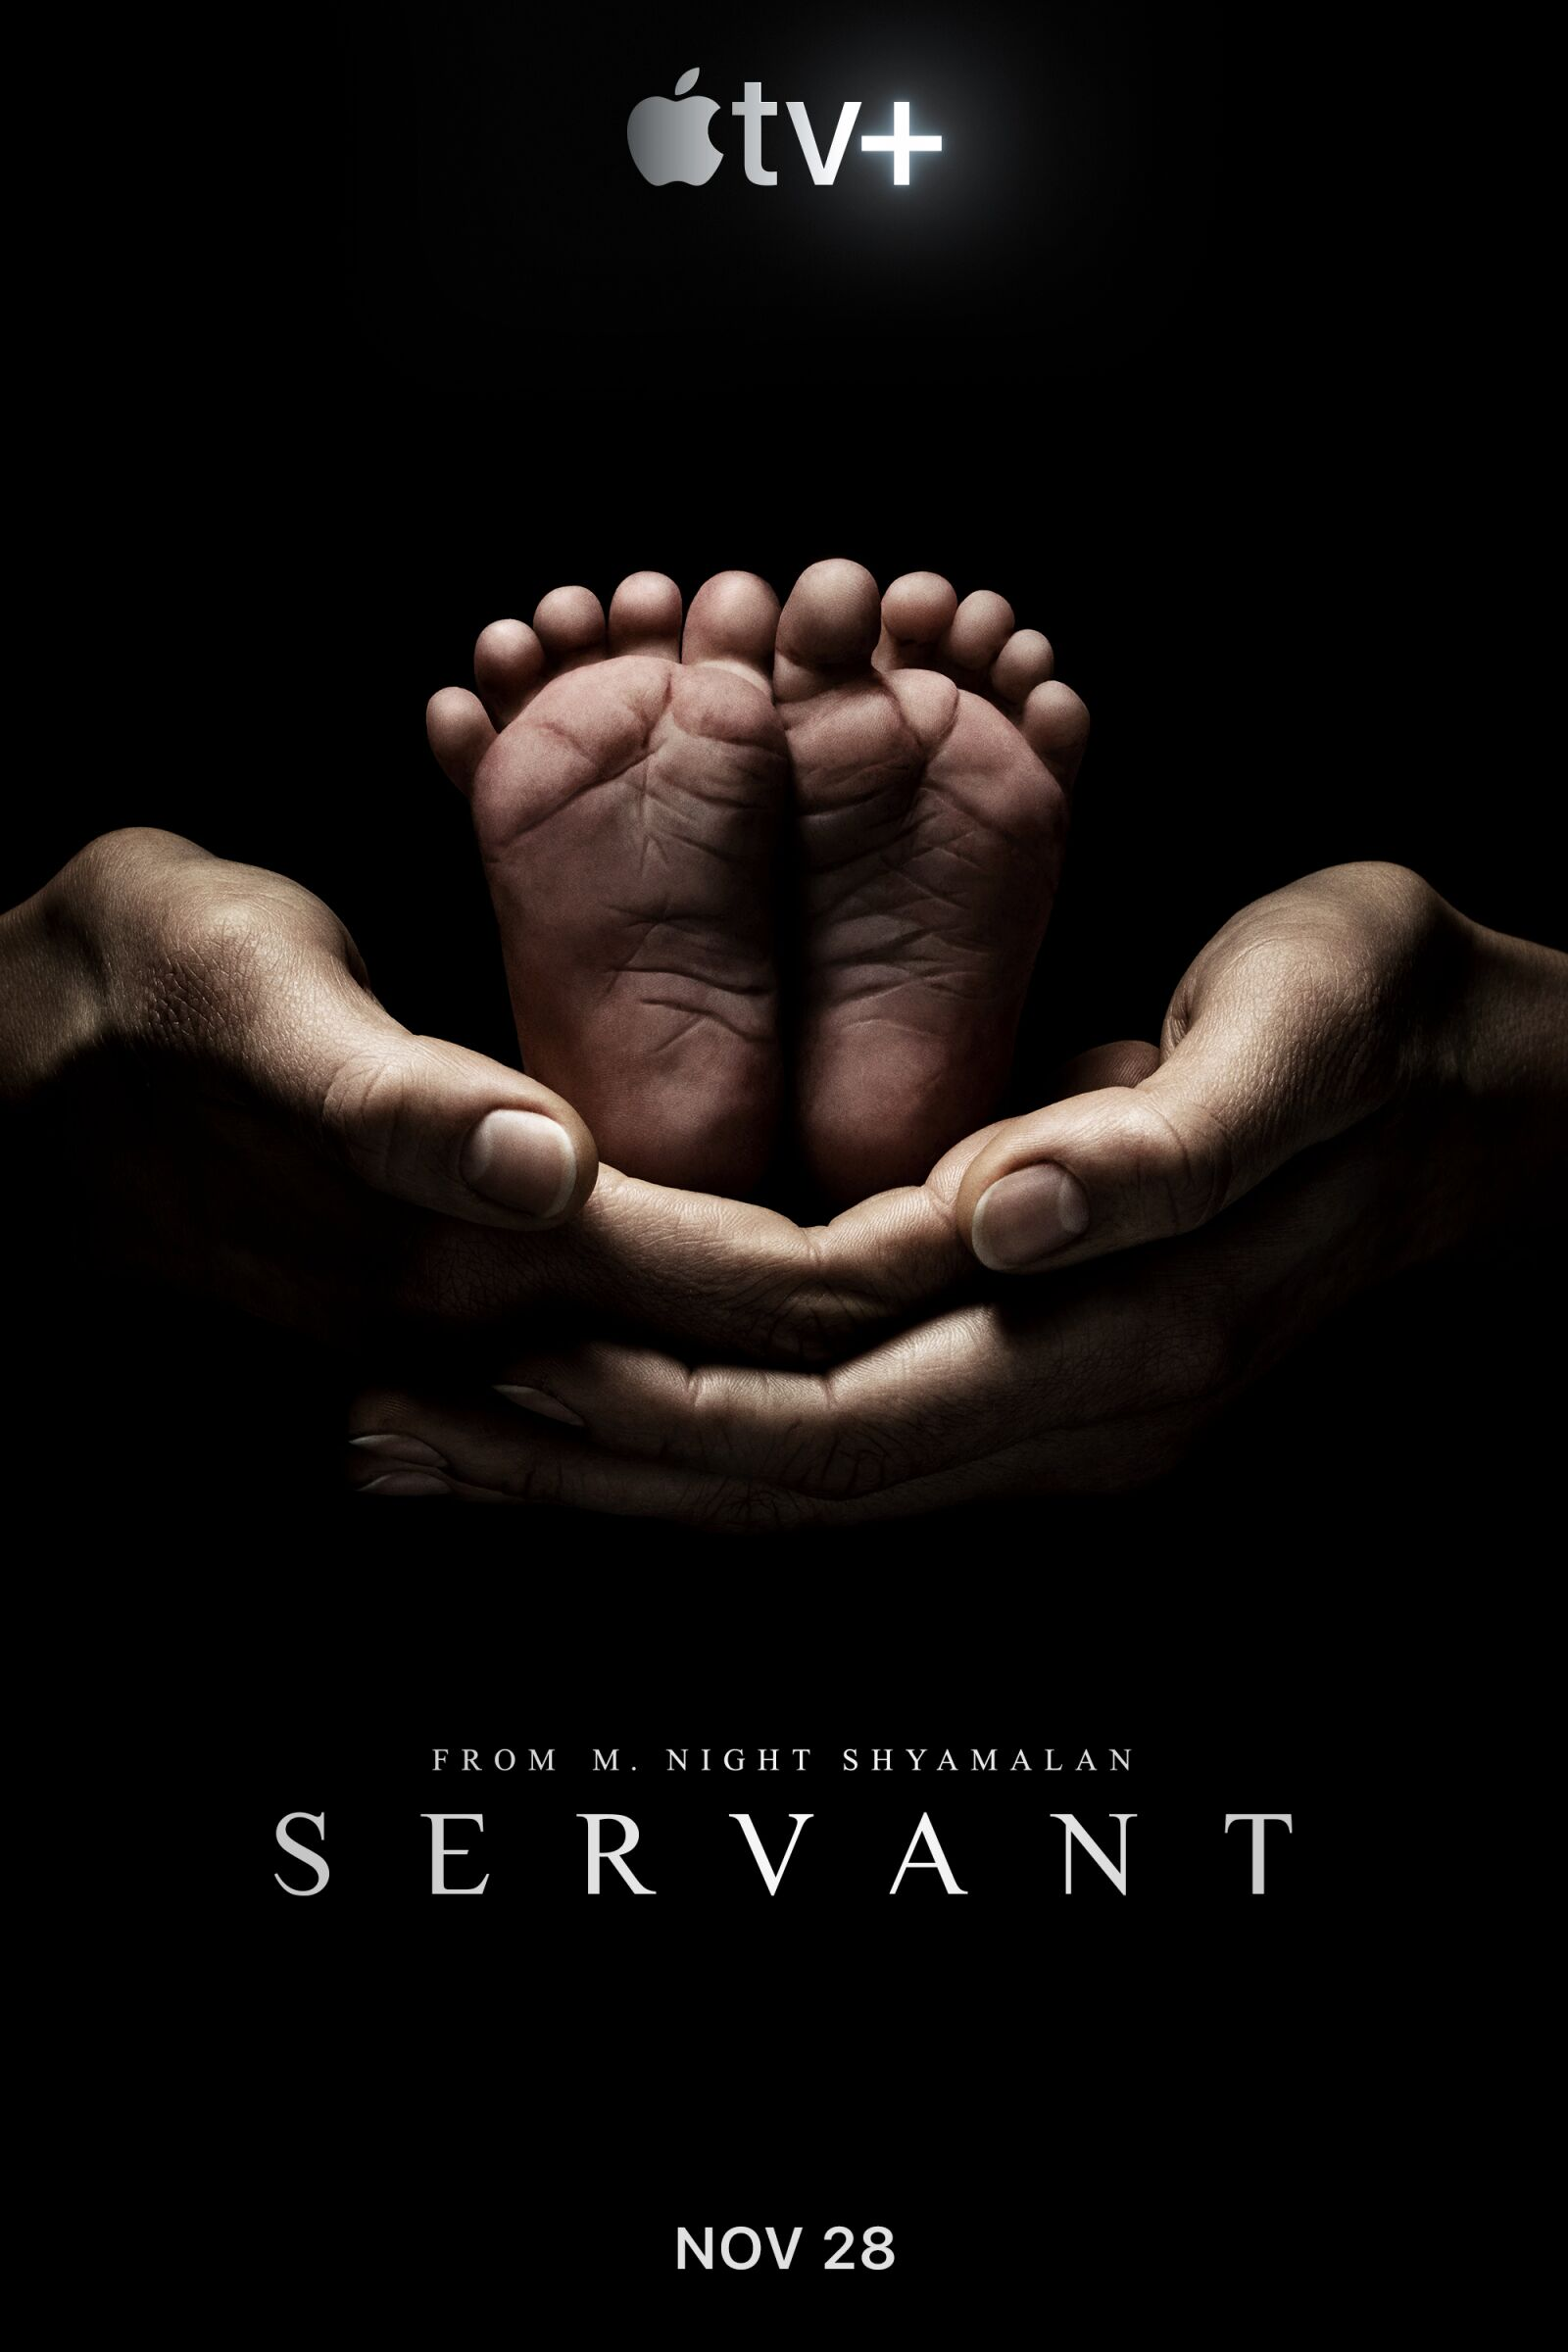 Servant season 1, episode 4 unravels new theories about Leanne